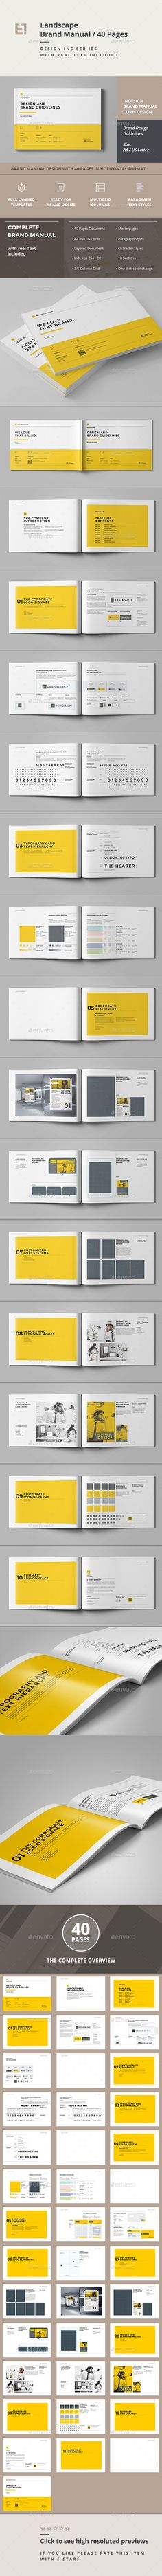 Brand Manual Brochure Design Template - Corporate Brochures Template InDesign INDD. Download here: https://graphicriver.net/item/brand-manual/11805697?ref=yinkira                                                                                                                                                                                 Plus